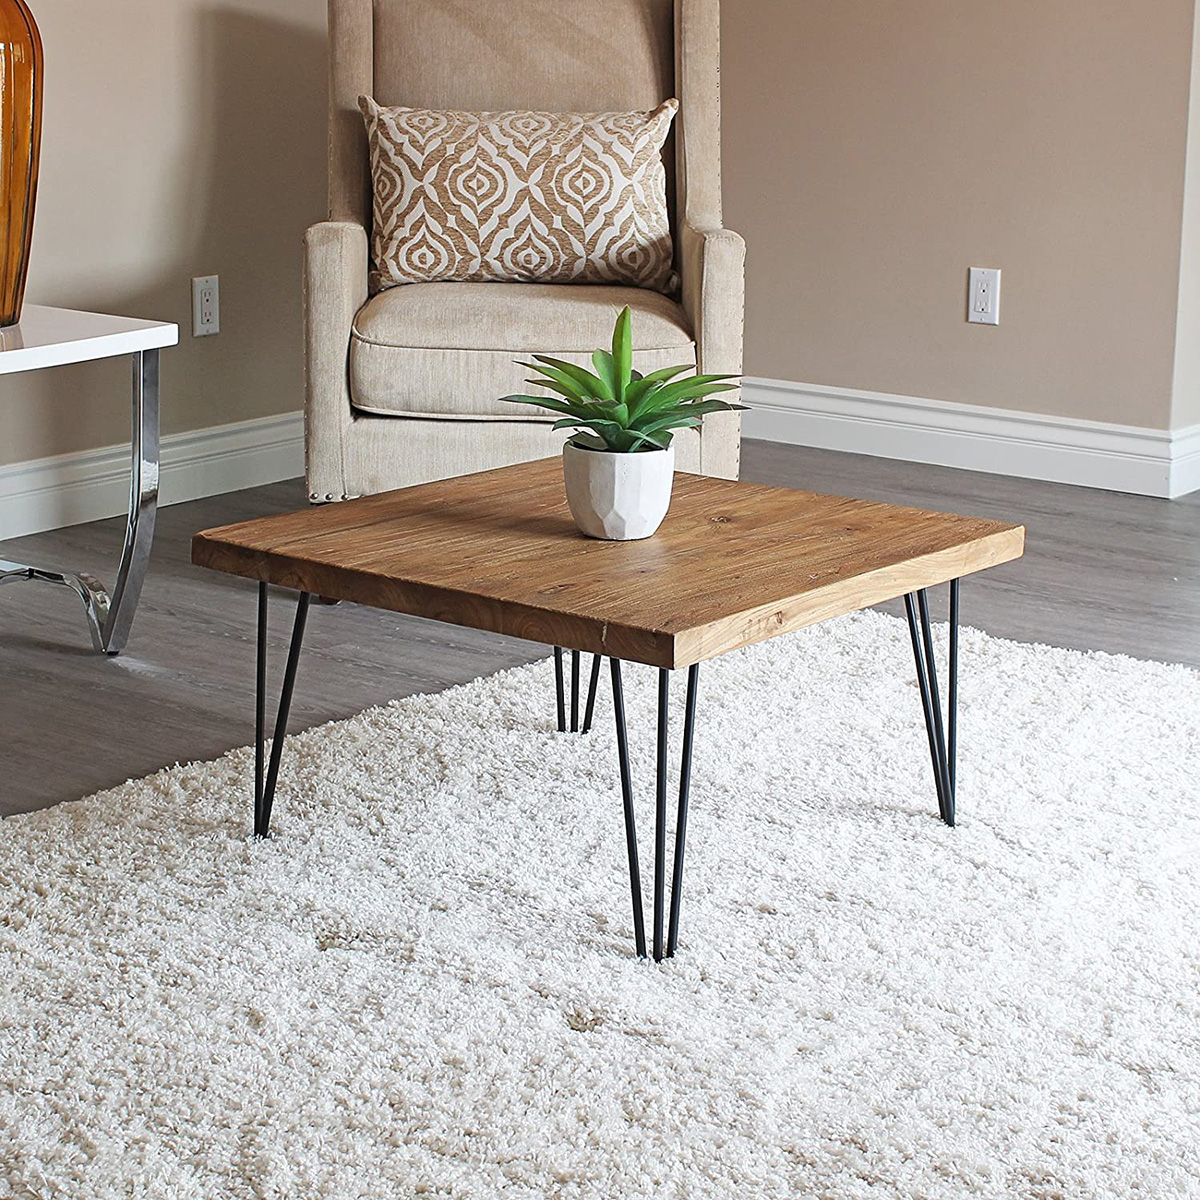 6 Wood Coffee Tables to Create a Cozy and Inviting Atmosphere